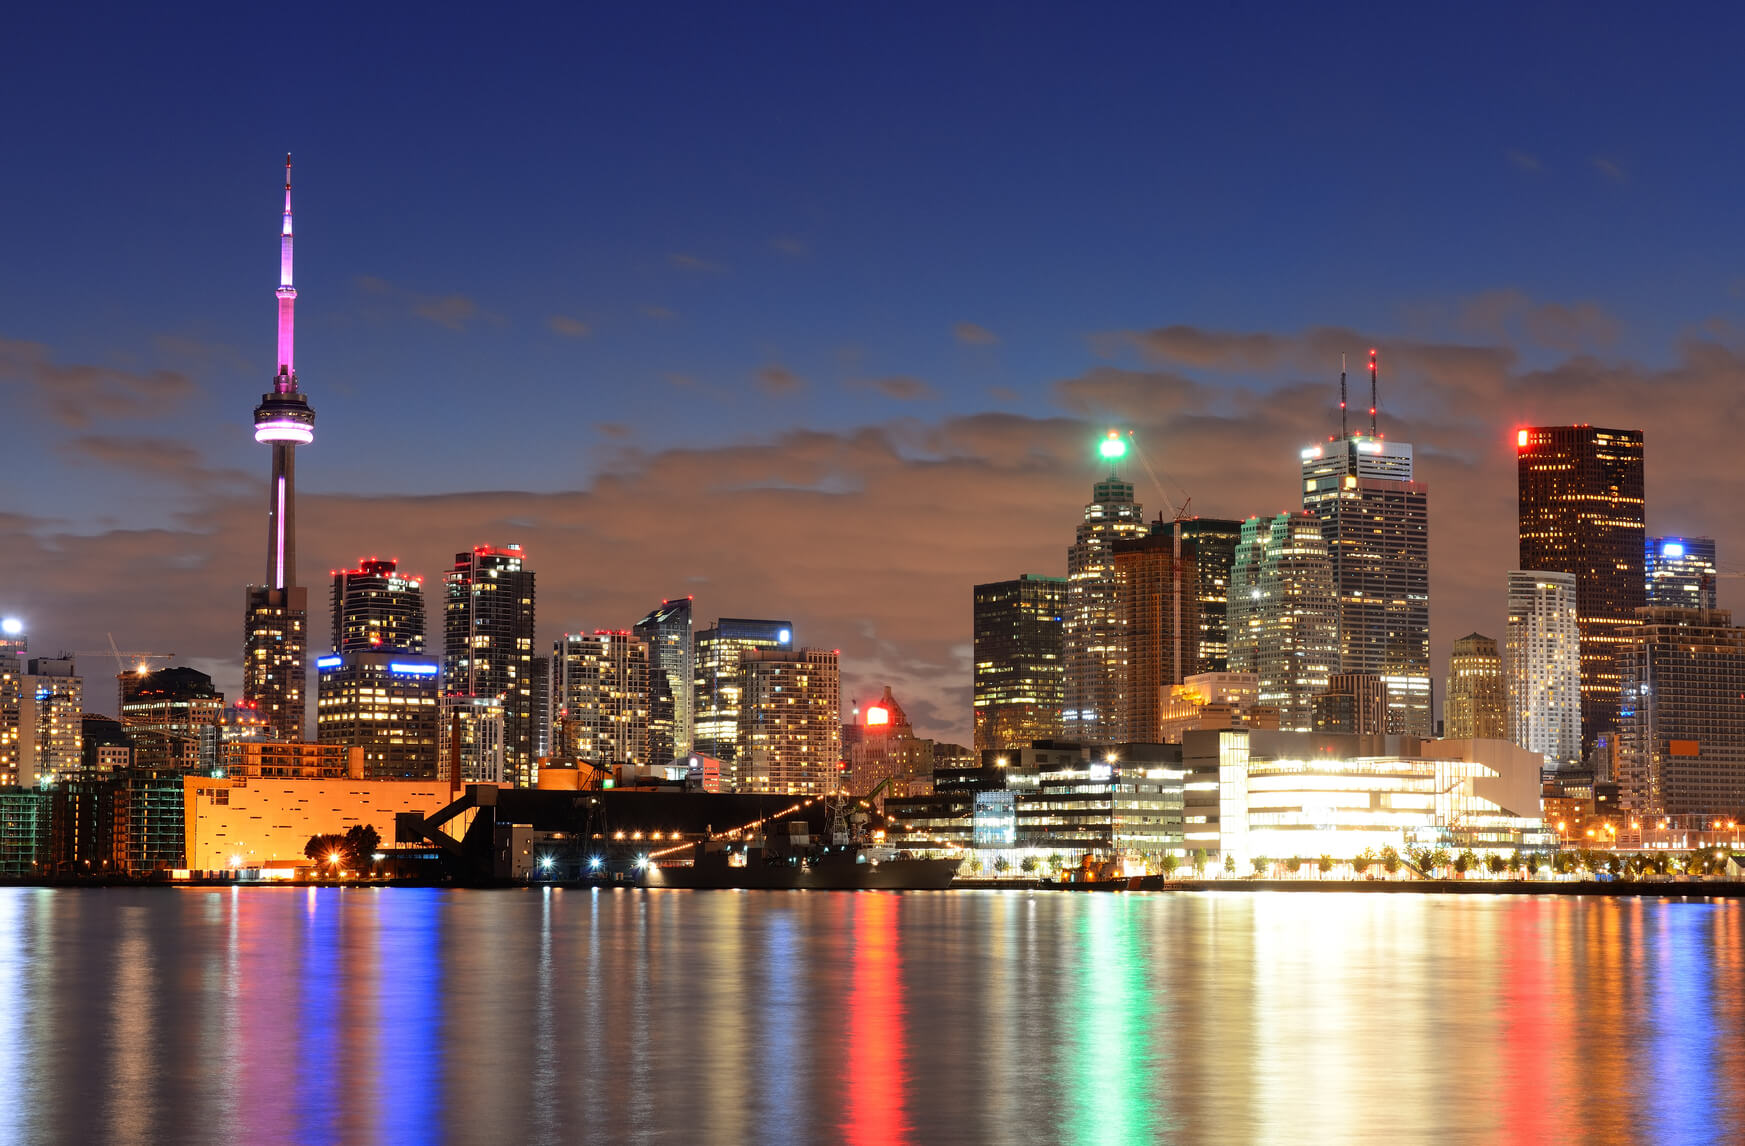 Non-stop from Miami to Toronto, Canada for only $168 roundtrip